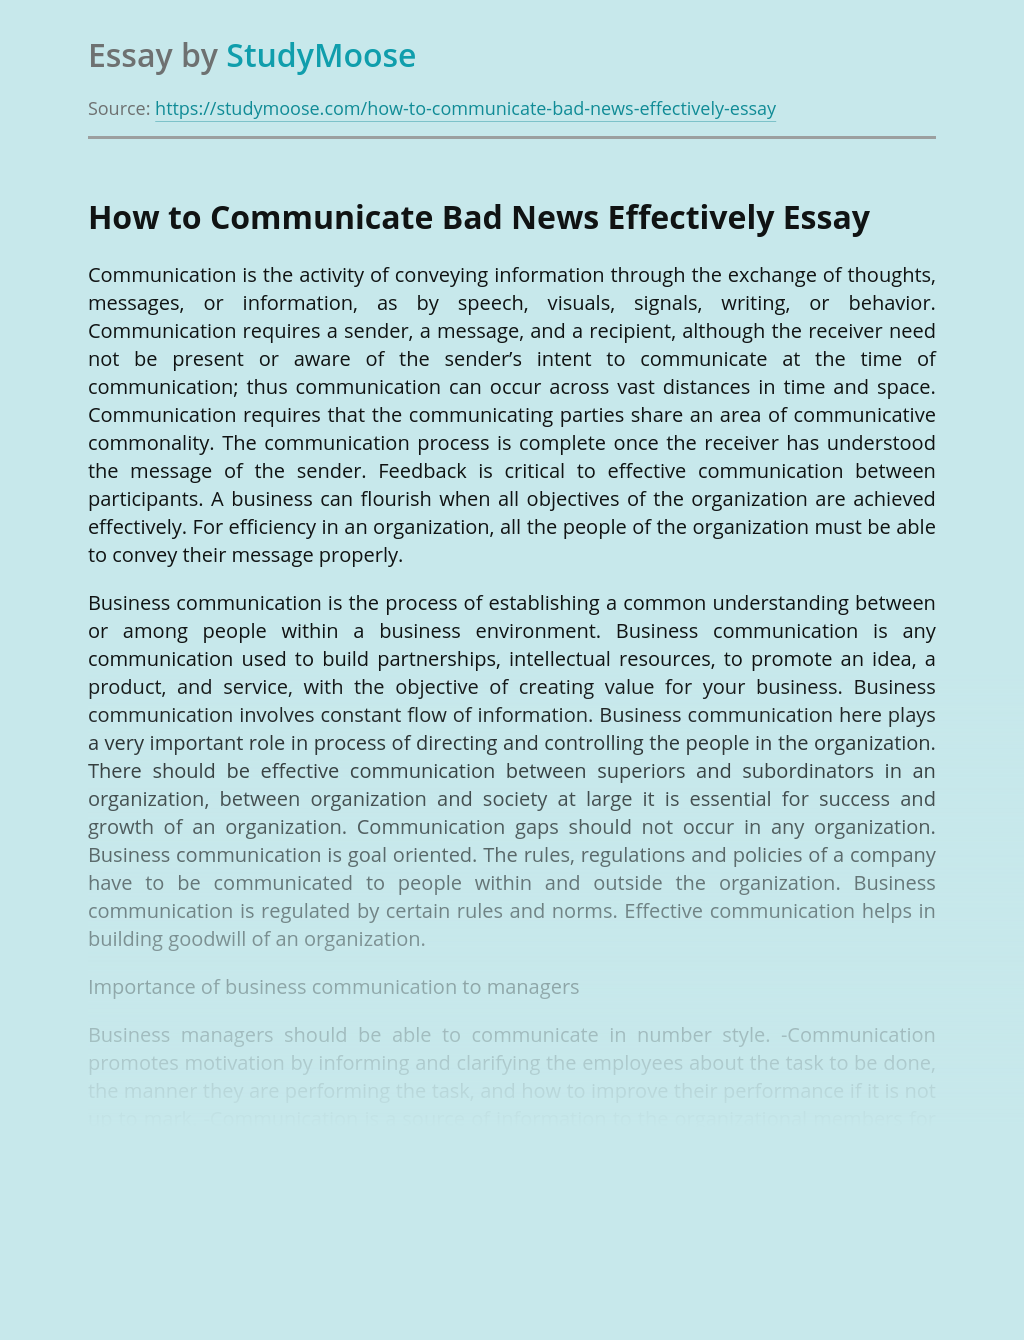 How to Communicate Bad News Effectively